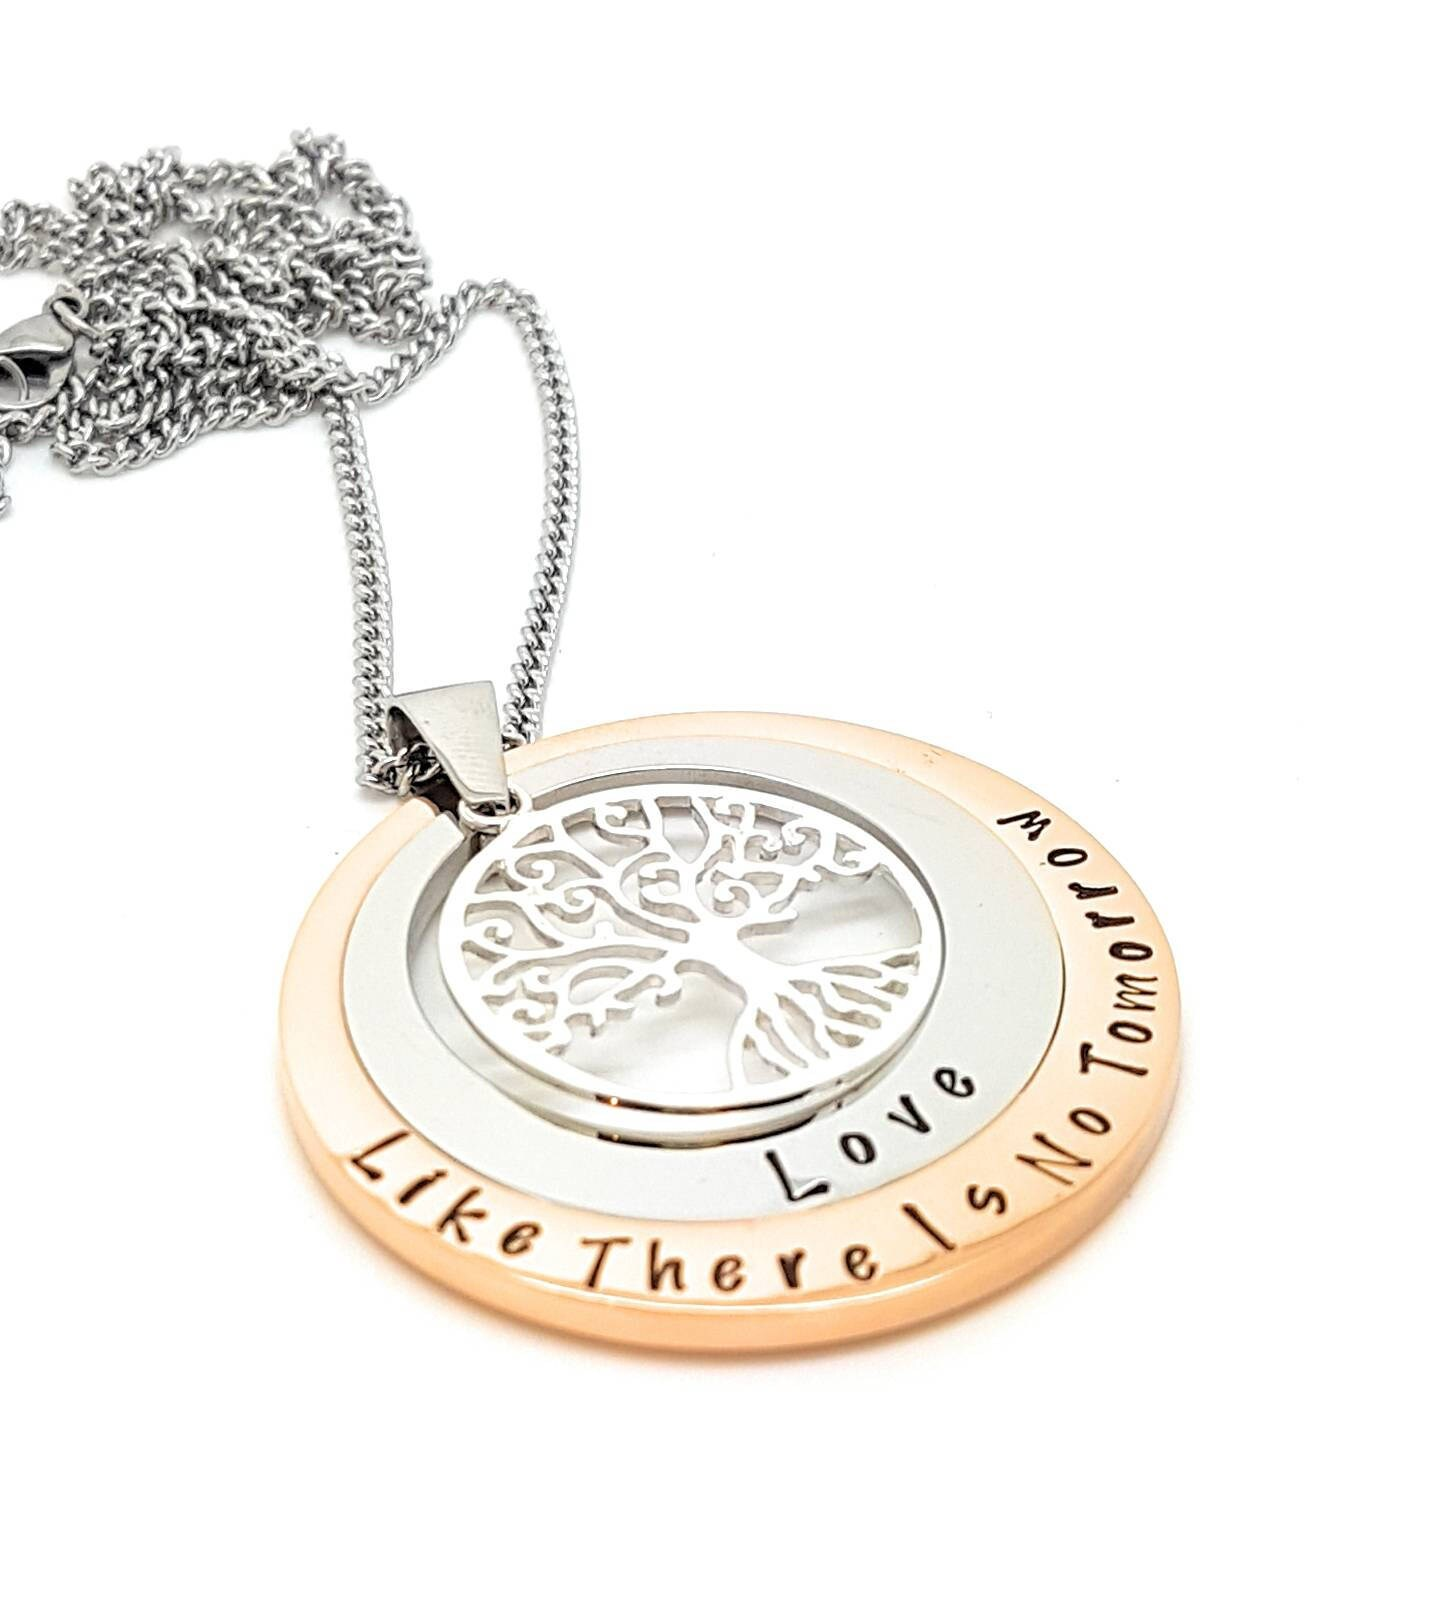 Personalised jewellery personalised necklace family necklace personalised jewellery personalised necklace family necklace layered family names tree of life pendant silver rose gold two circle custom mozeypictures Images